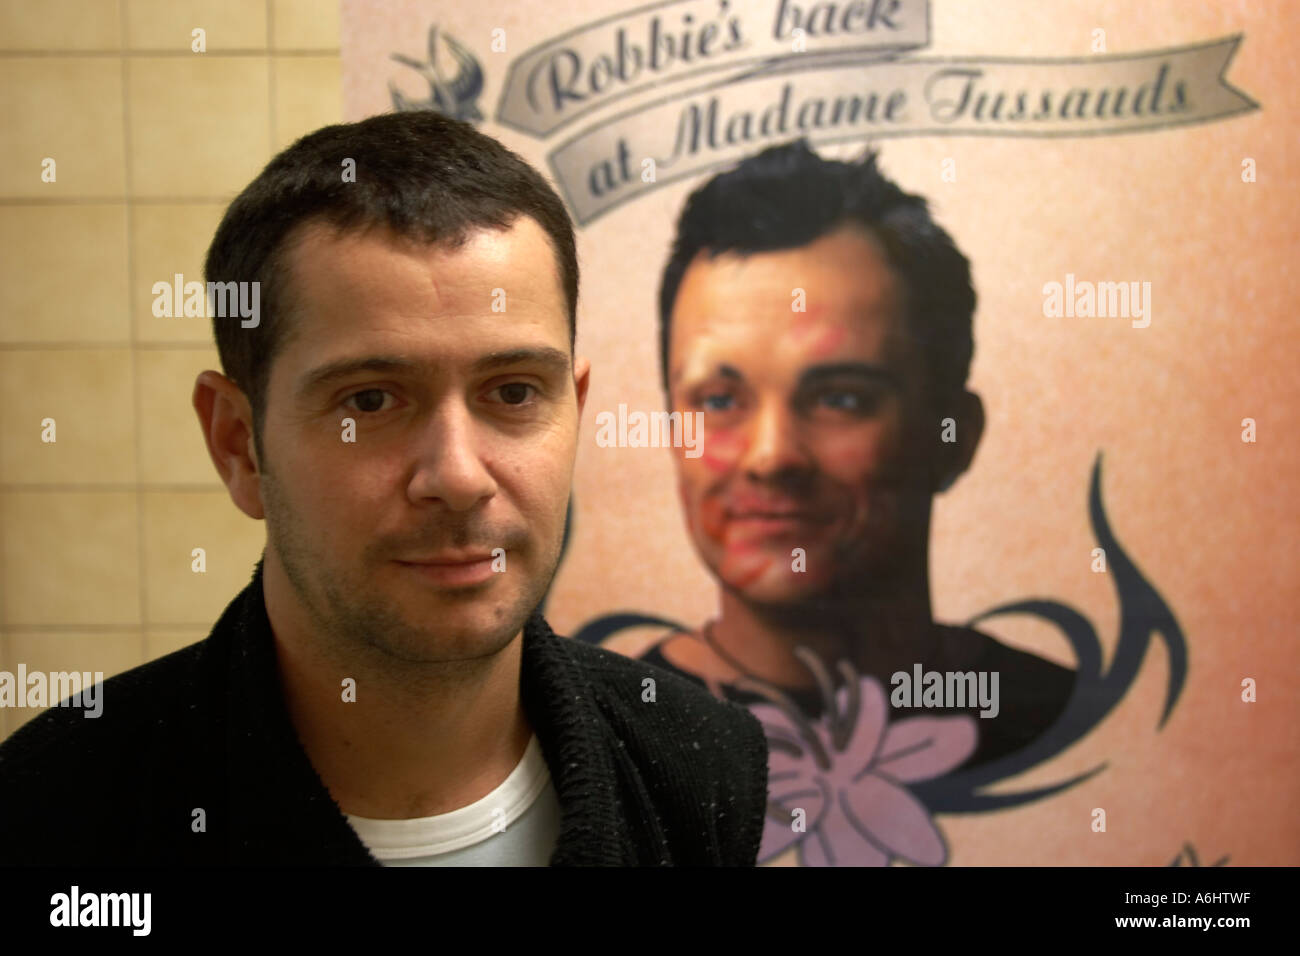 Rbbie Williams lookalike with a poster on the underground - Stock Image